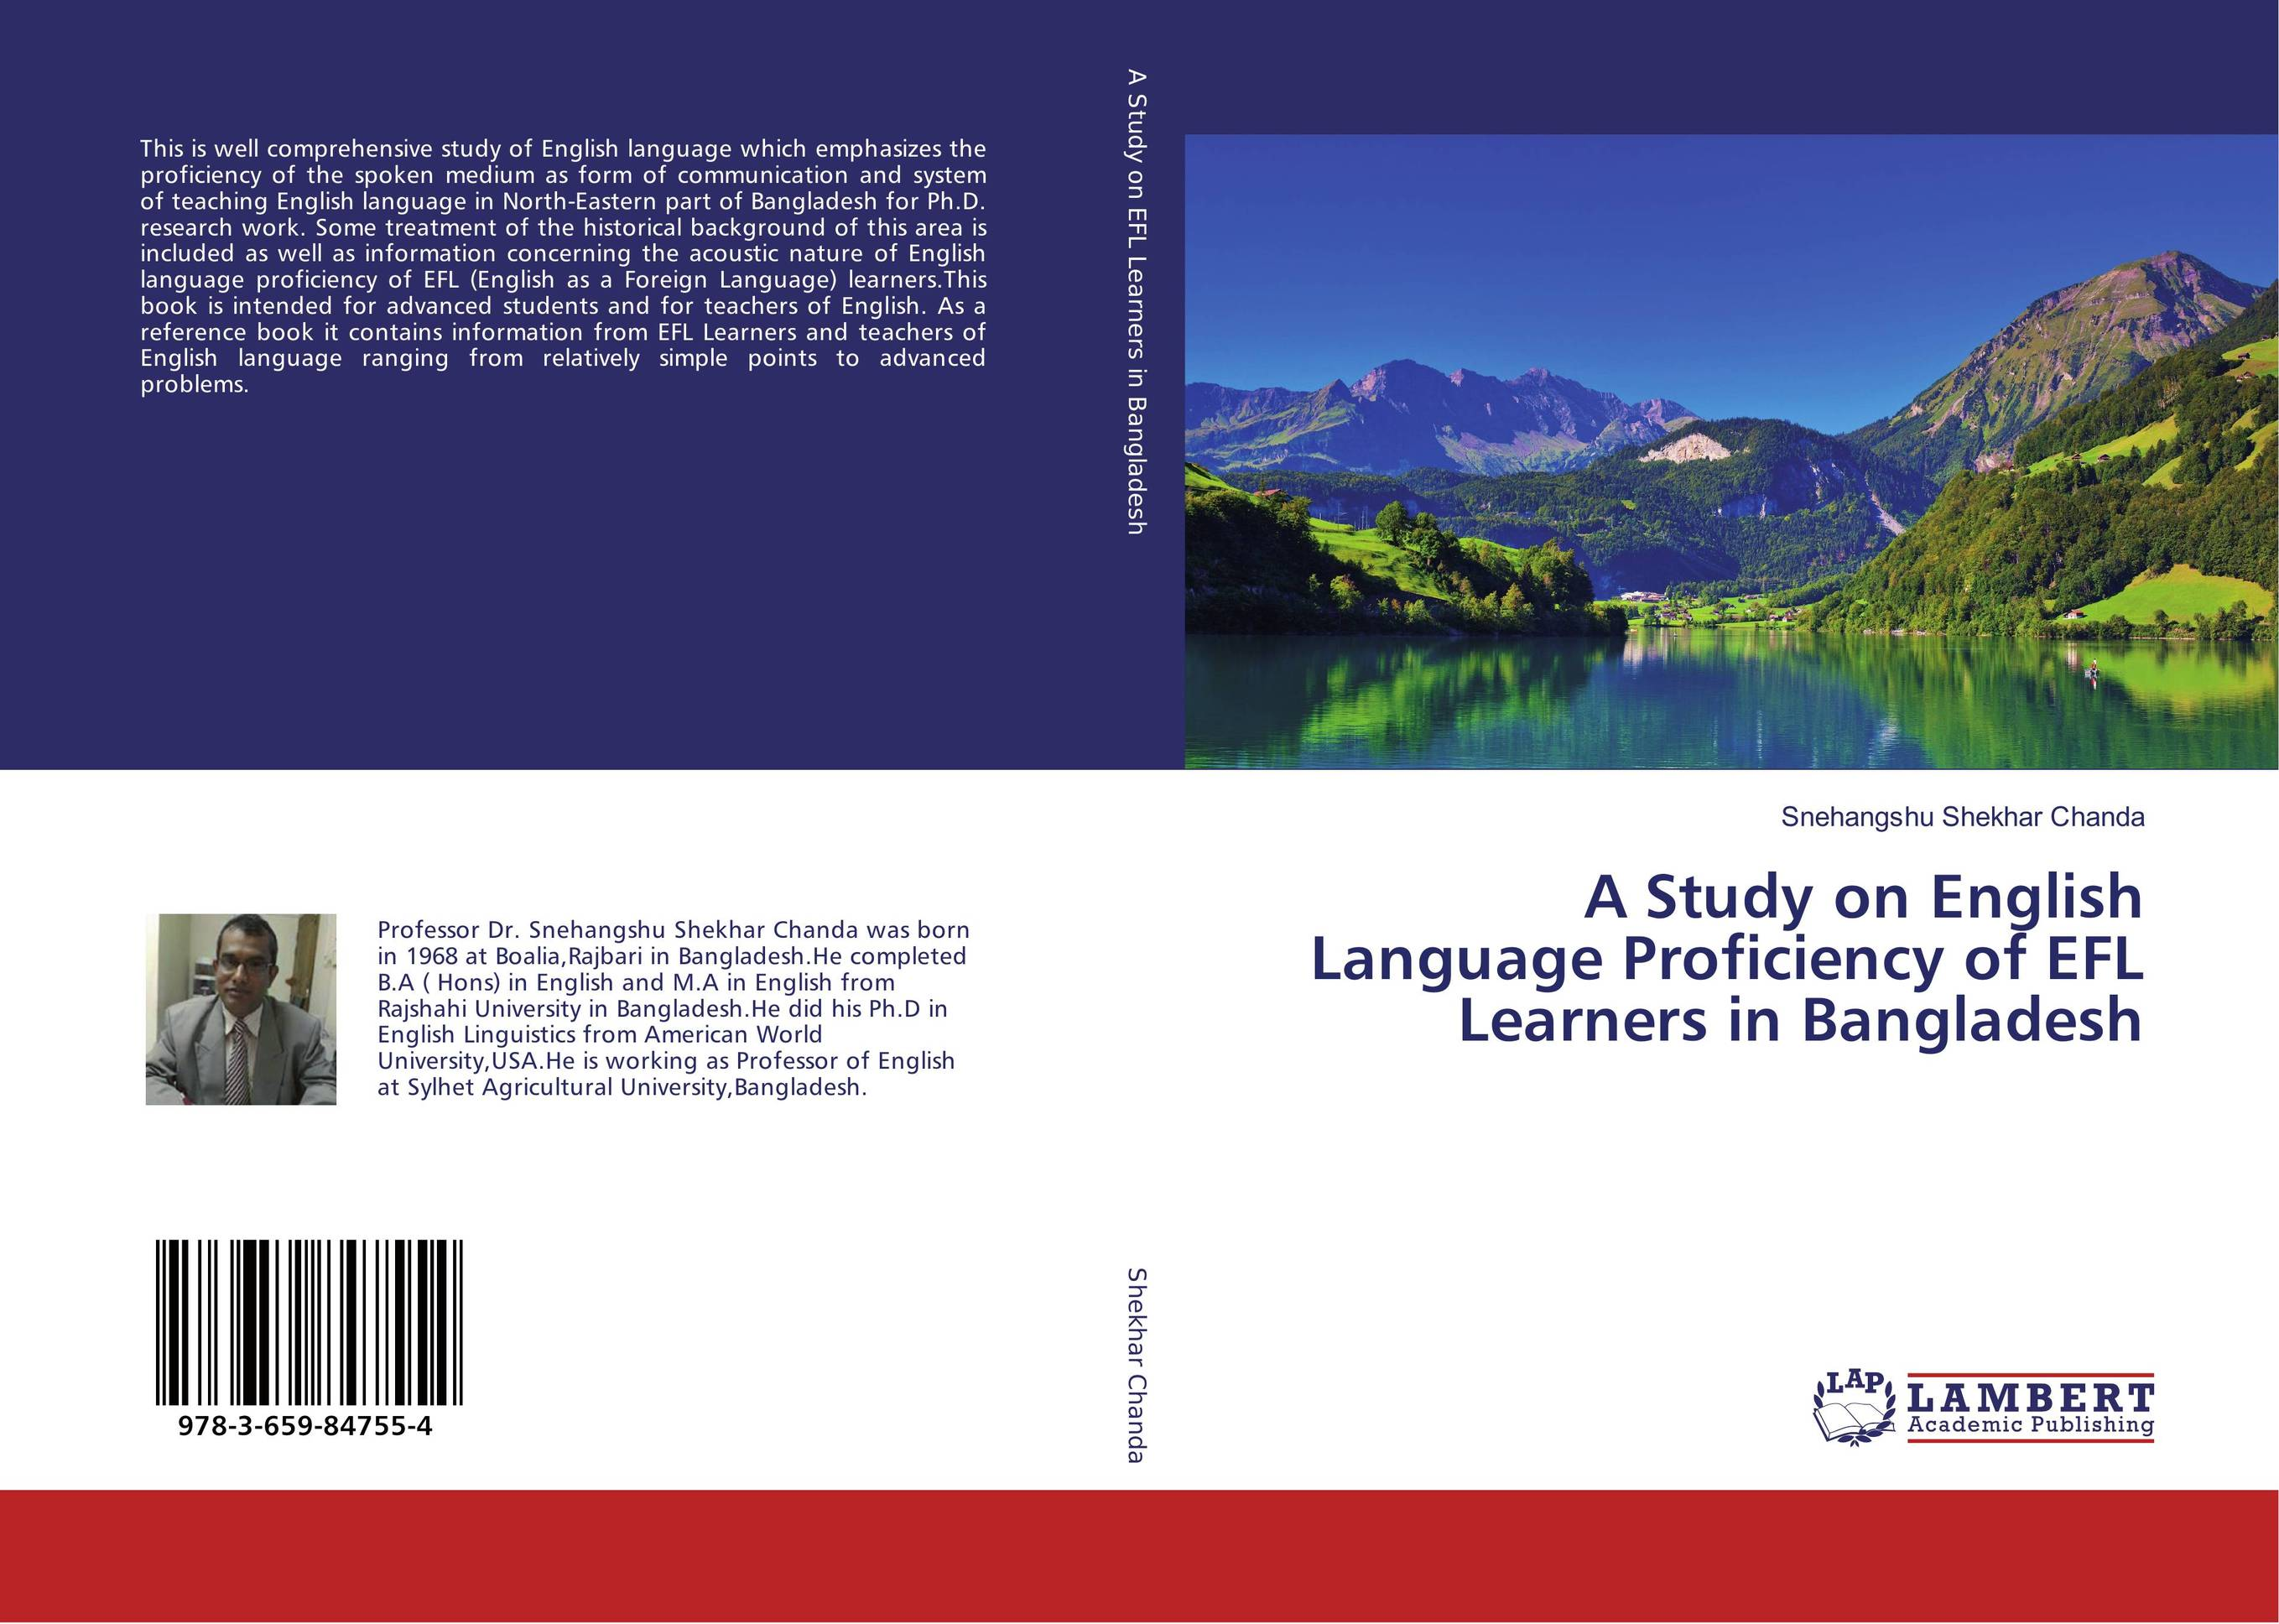 A Study on English Language Proficiency of EFL Learners in Bangladesh купить